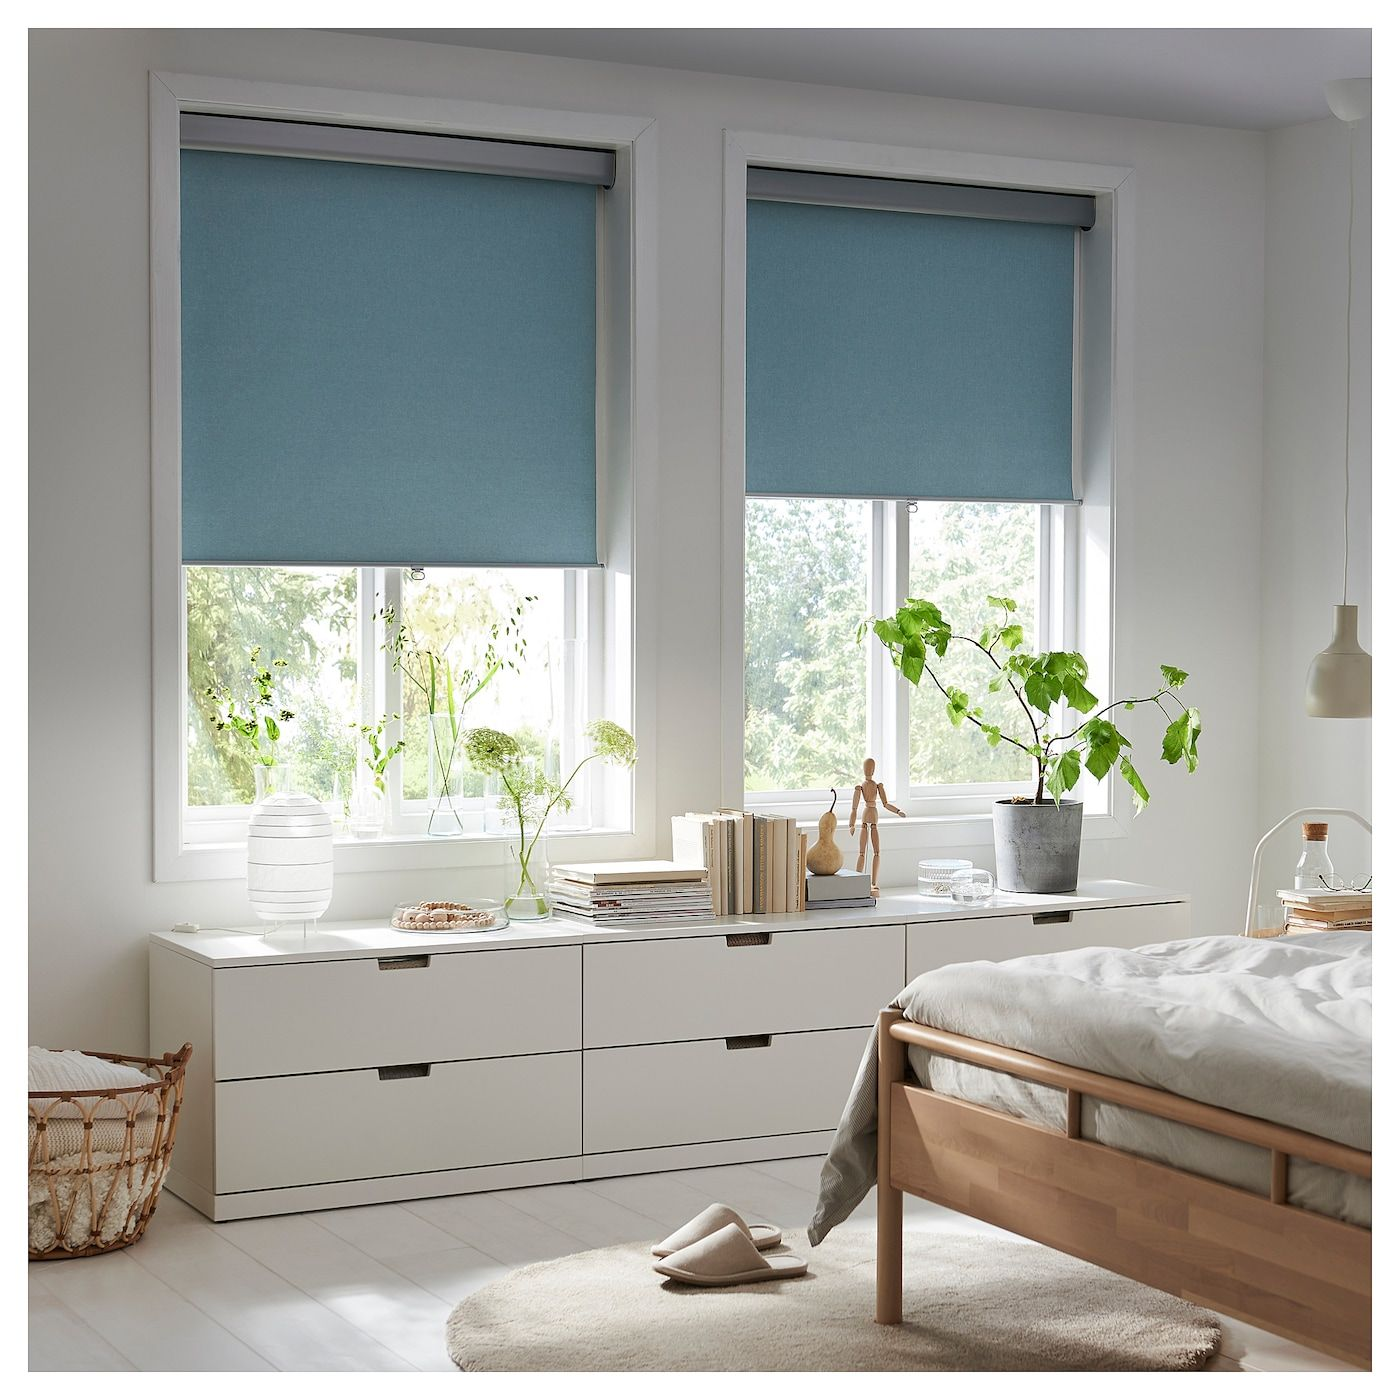 Tretur Blackout Roller Blind Light Blue Ikea In 2020 Cellular Blinds Blackout Roller Blinds Roller Blinds